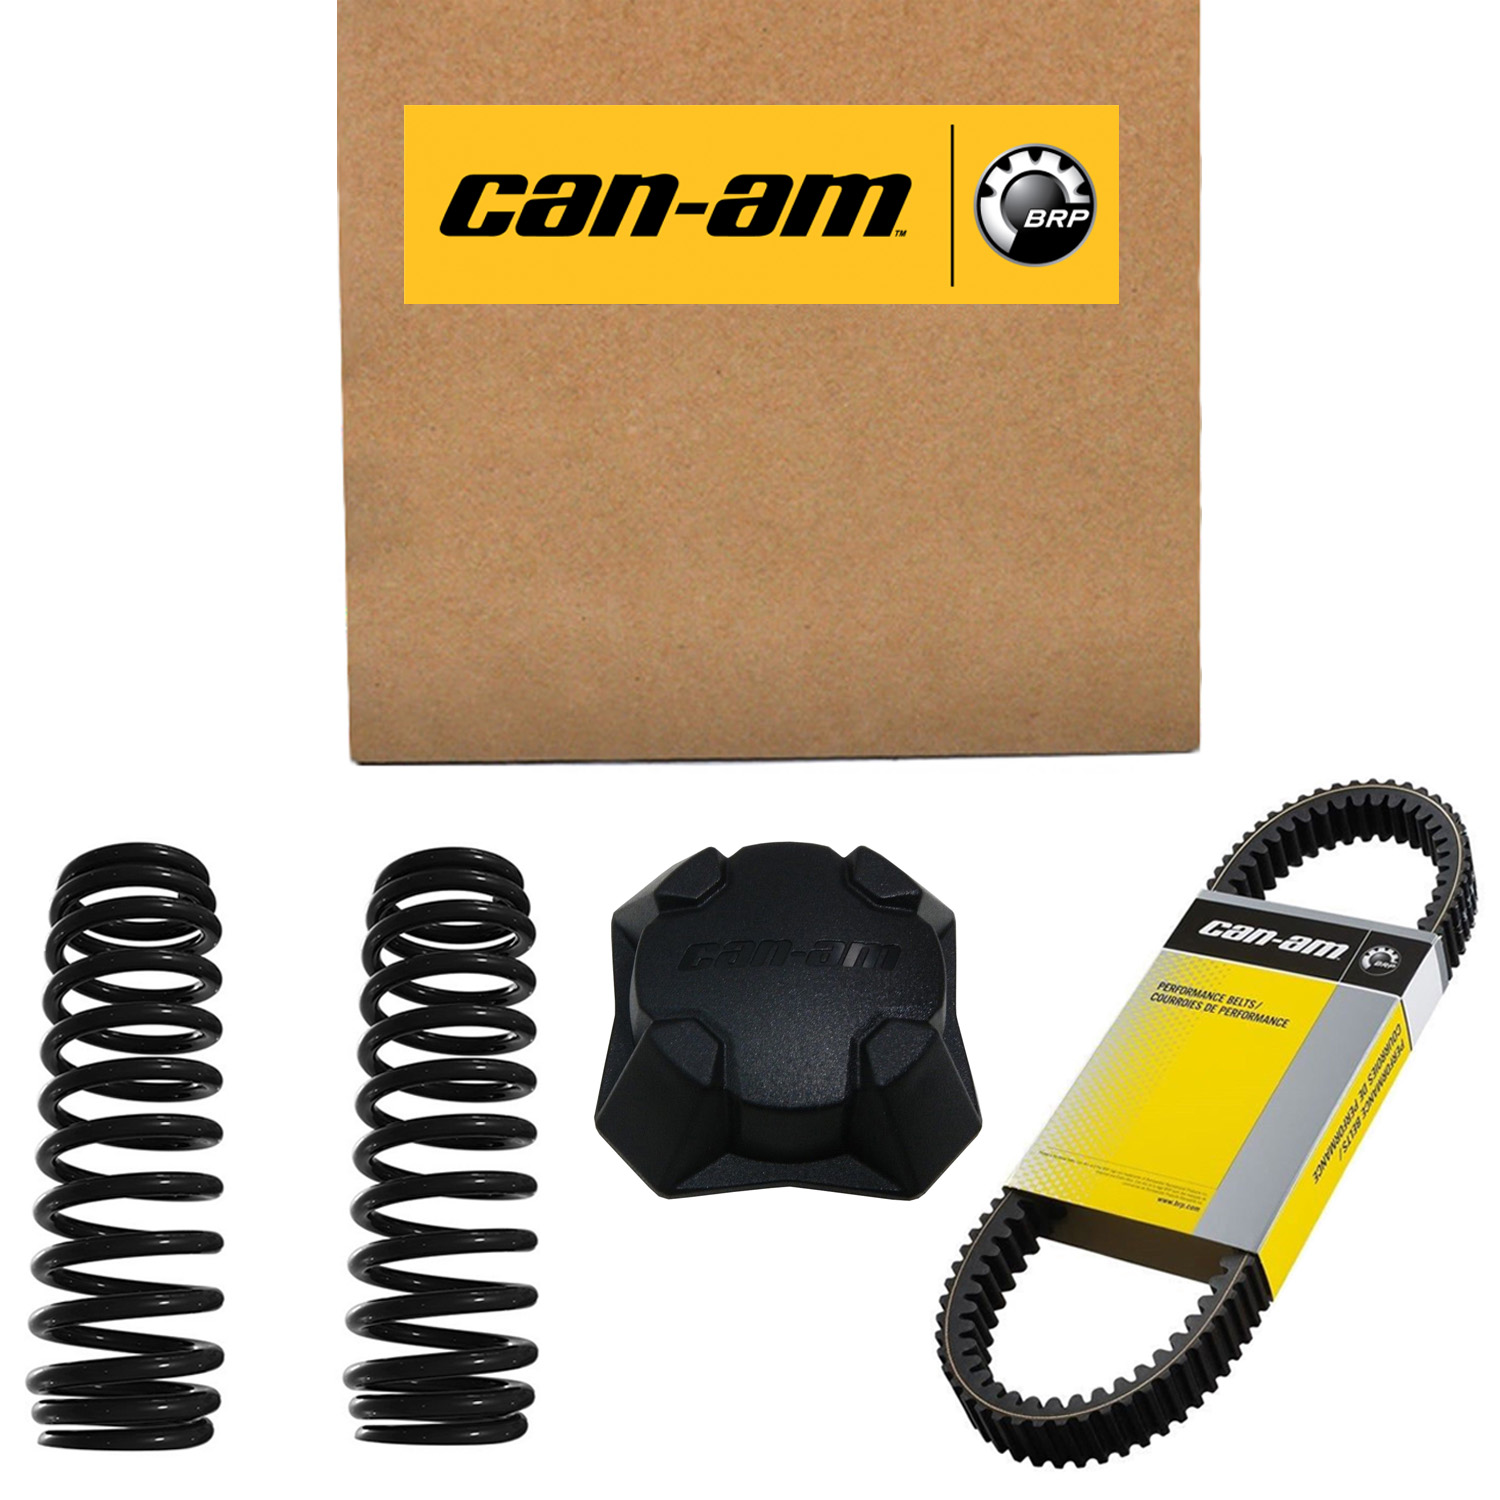 Can-Am New OEM Defender Multimount Winch Harness, 710004869